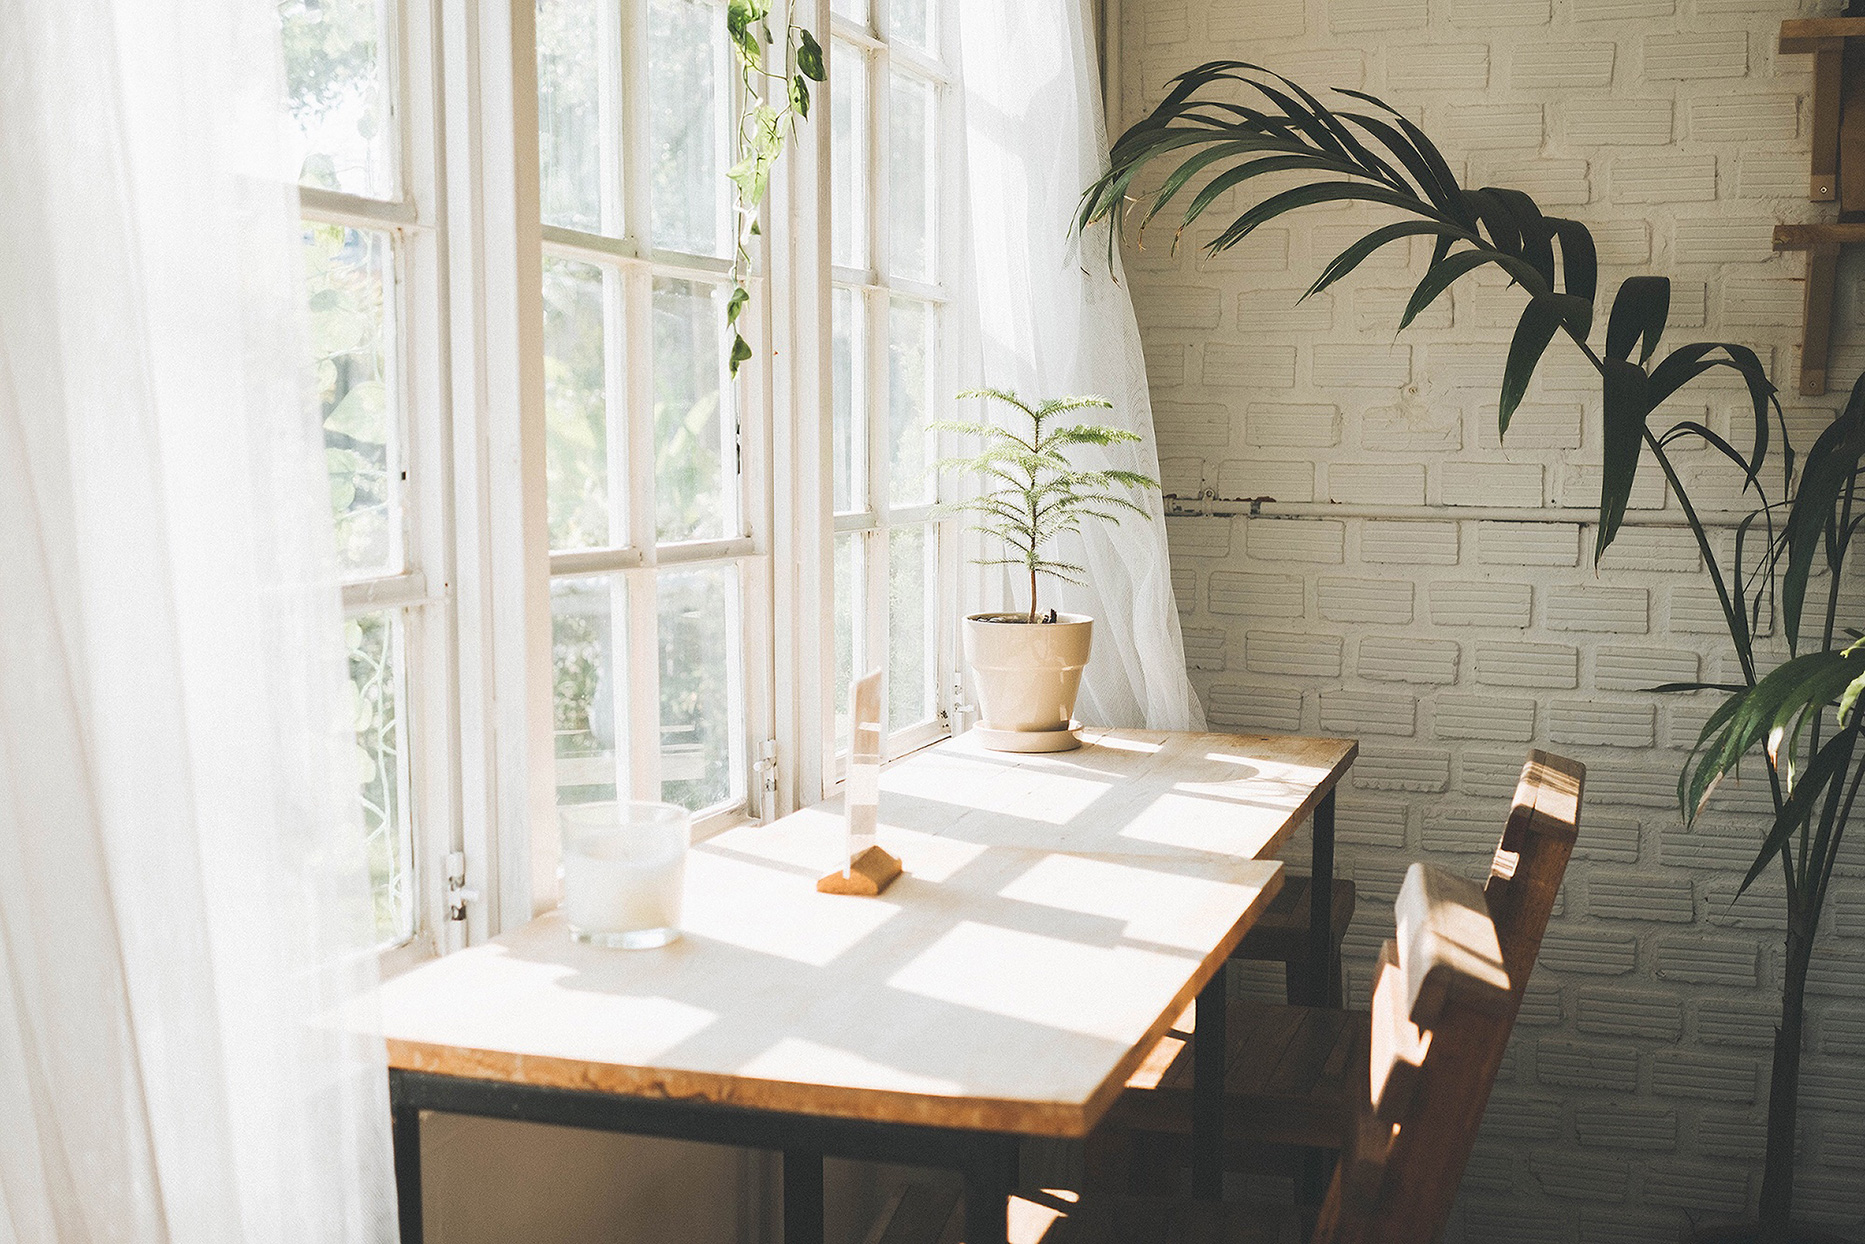 Desk in front of window with plants